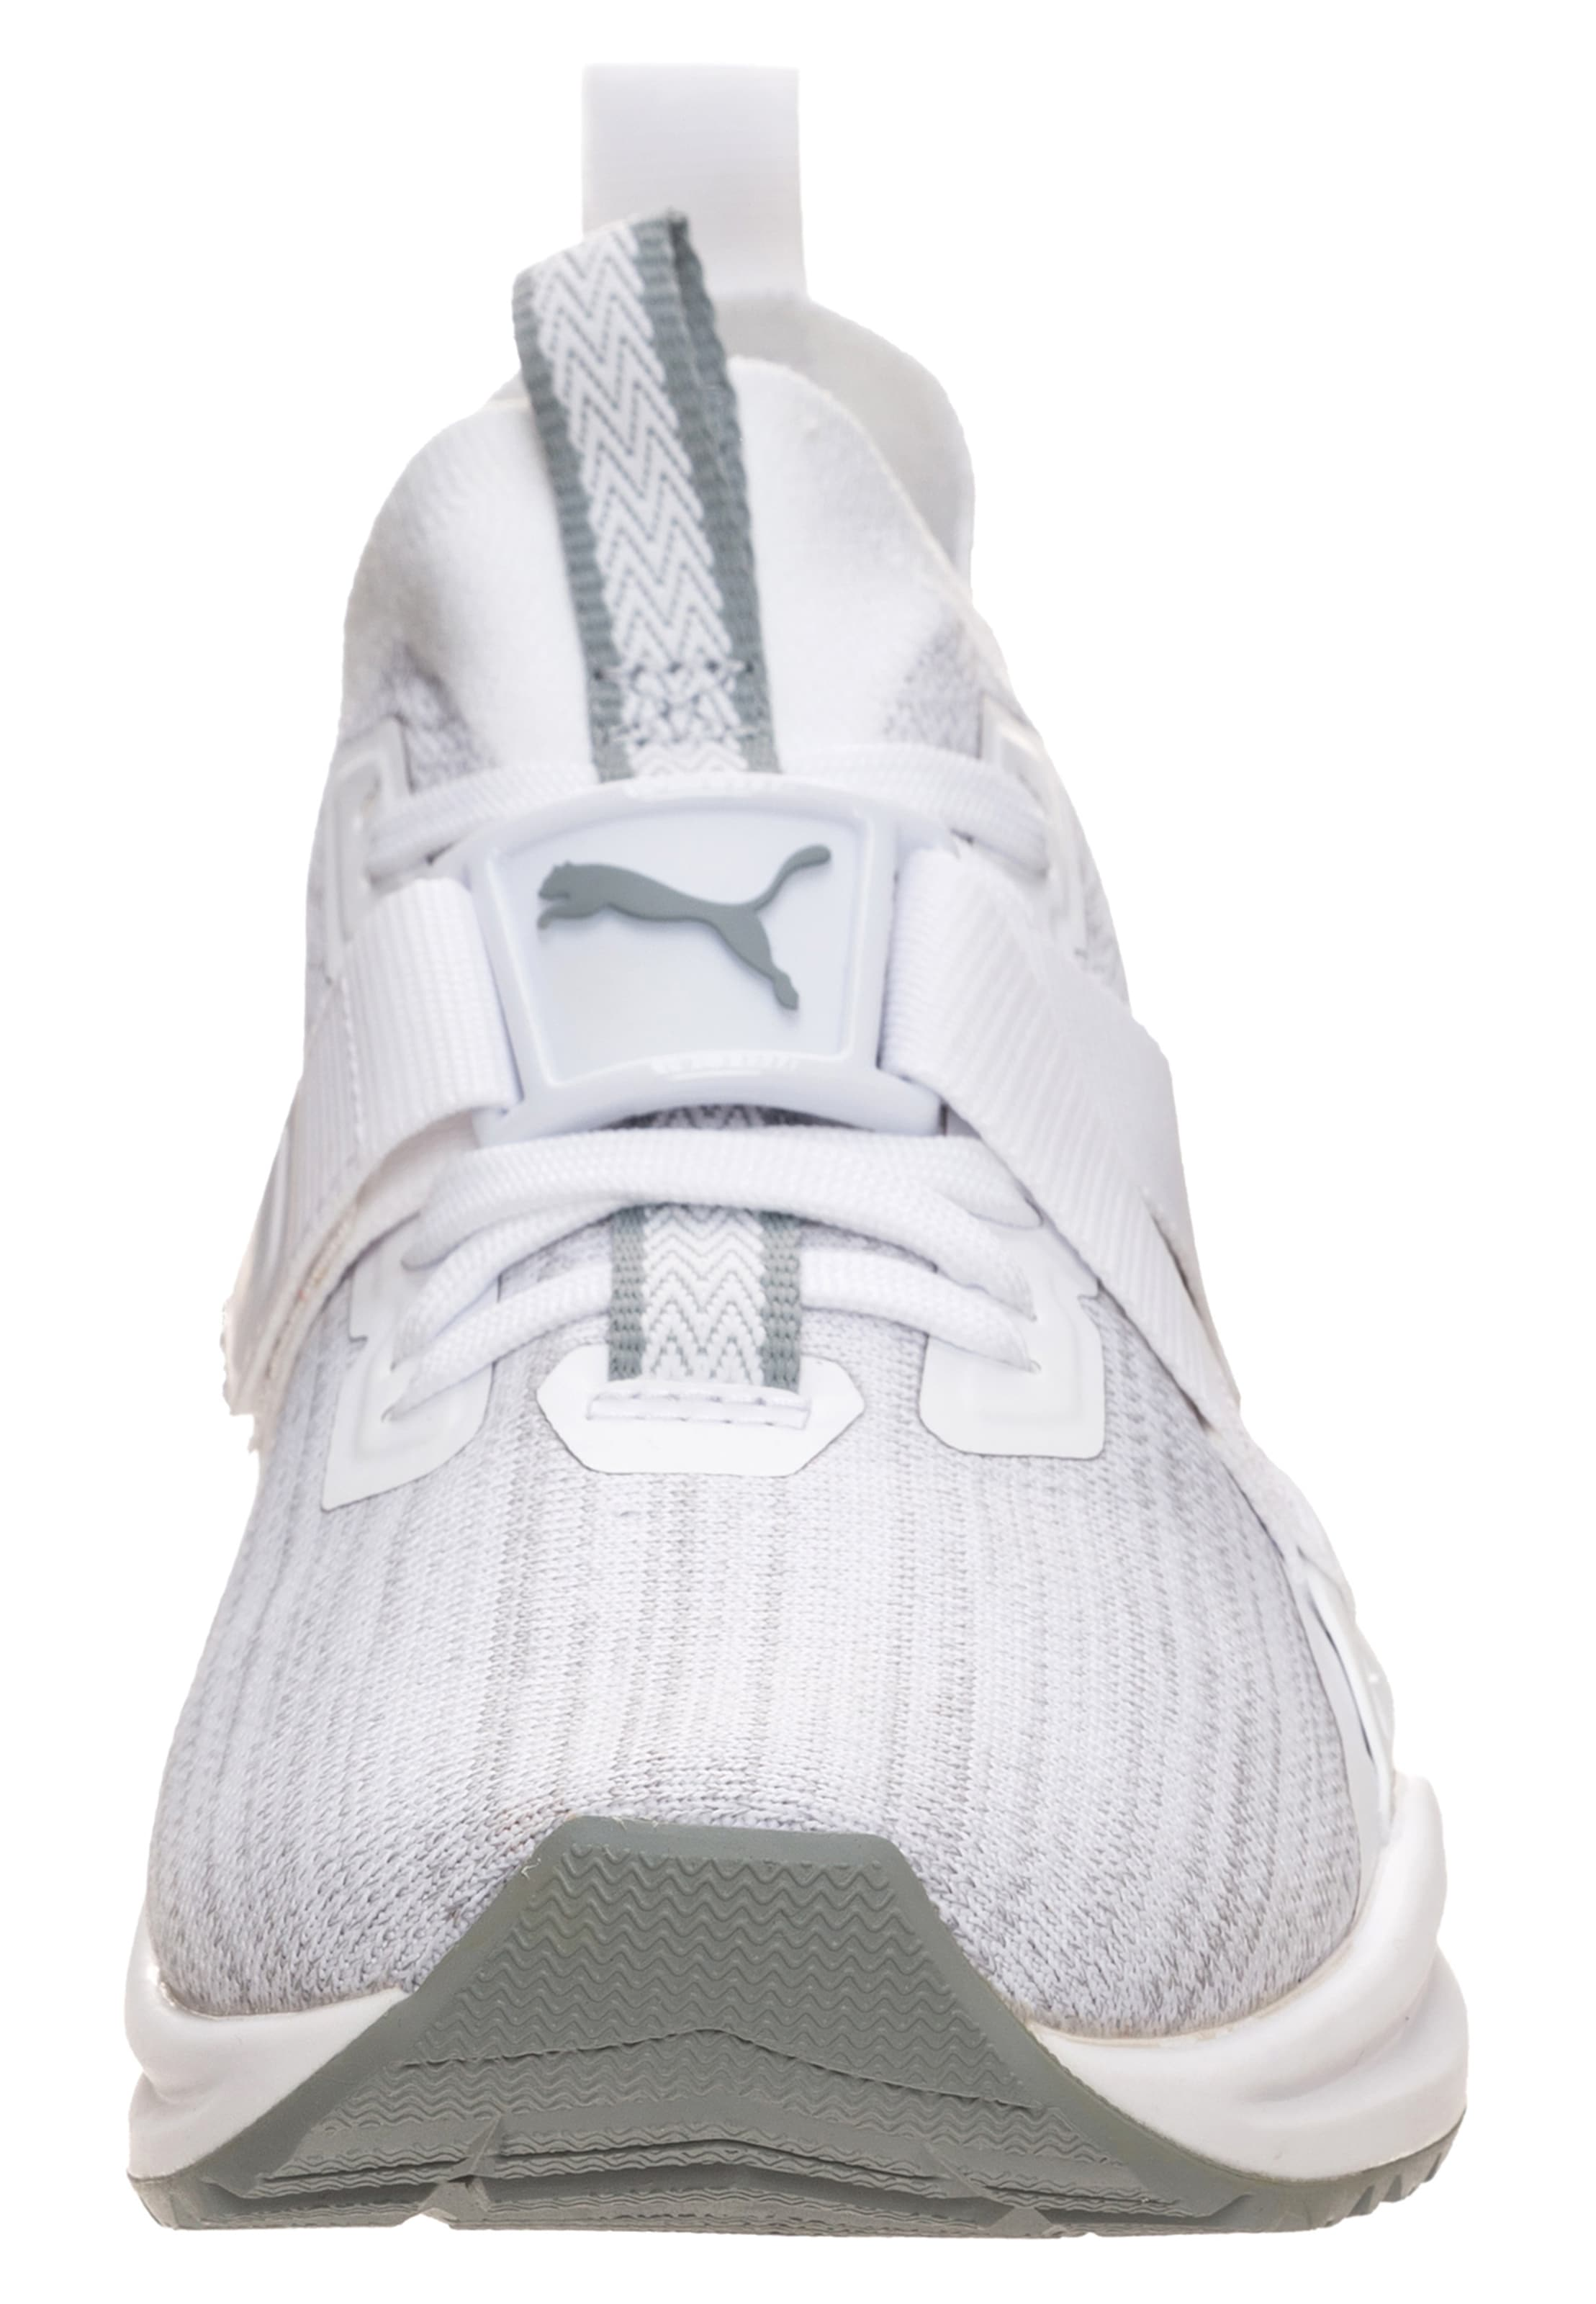 Ven Enflamment Evoknit Lo W Chaussures Puma Rose